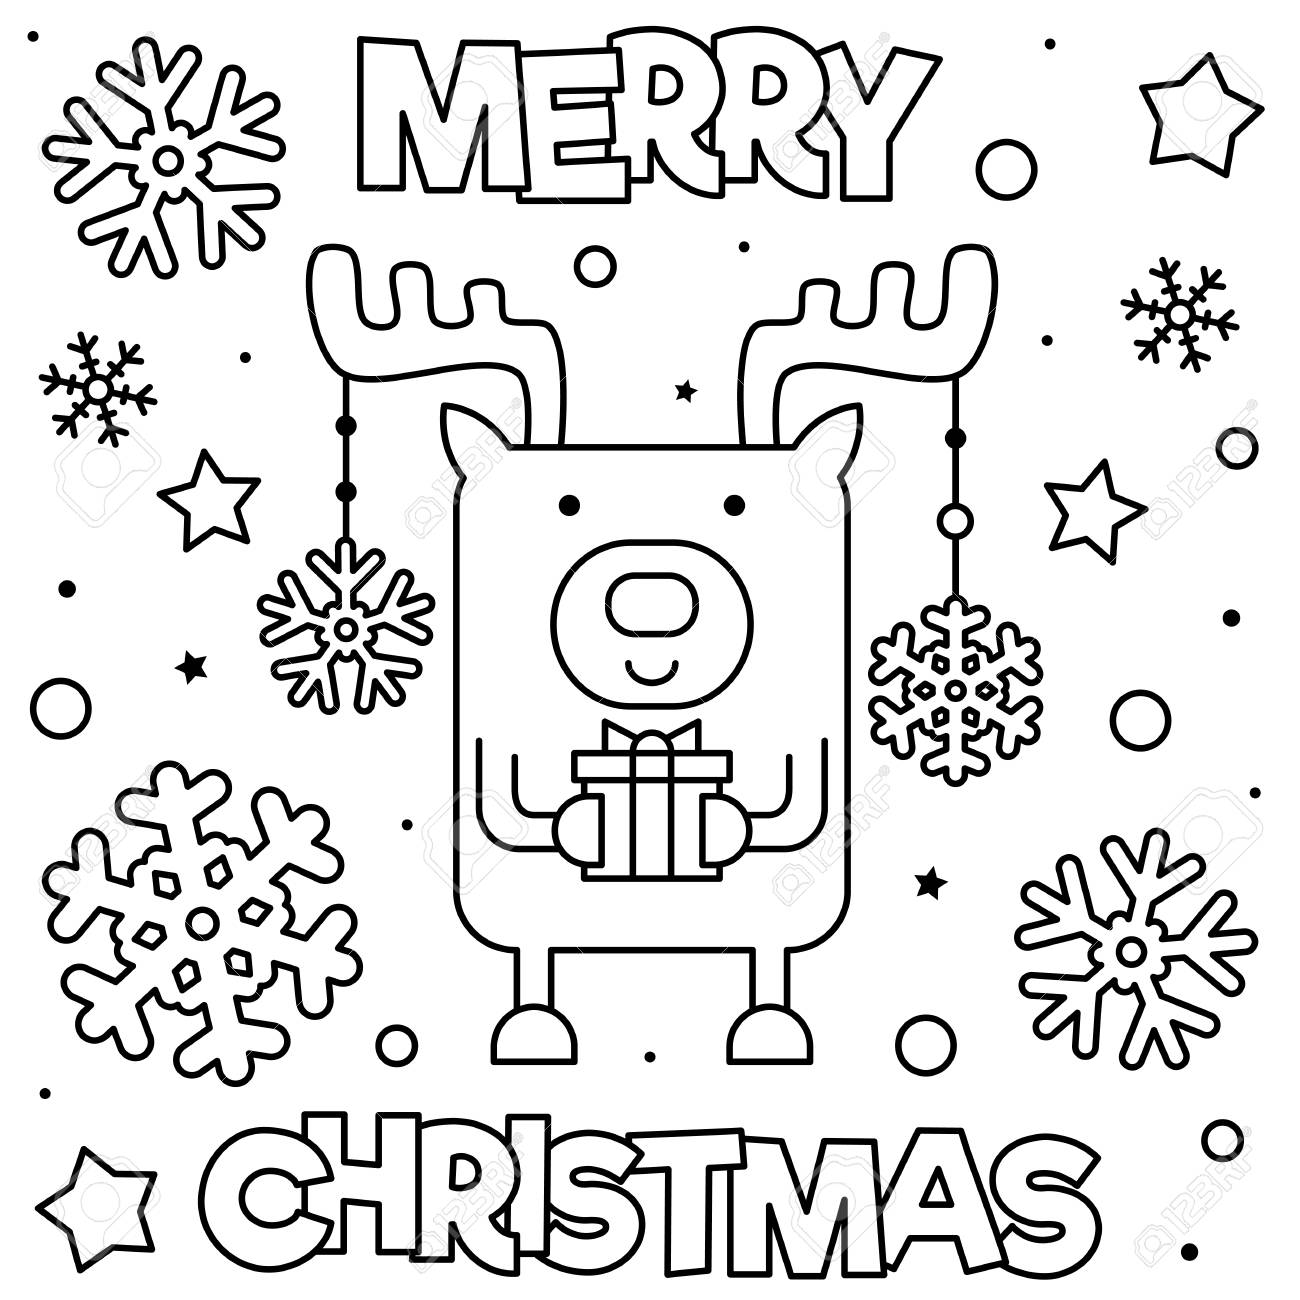 Merry Christmas. Coloring page. Black and white vector illustration